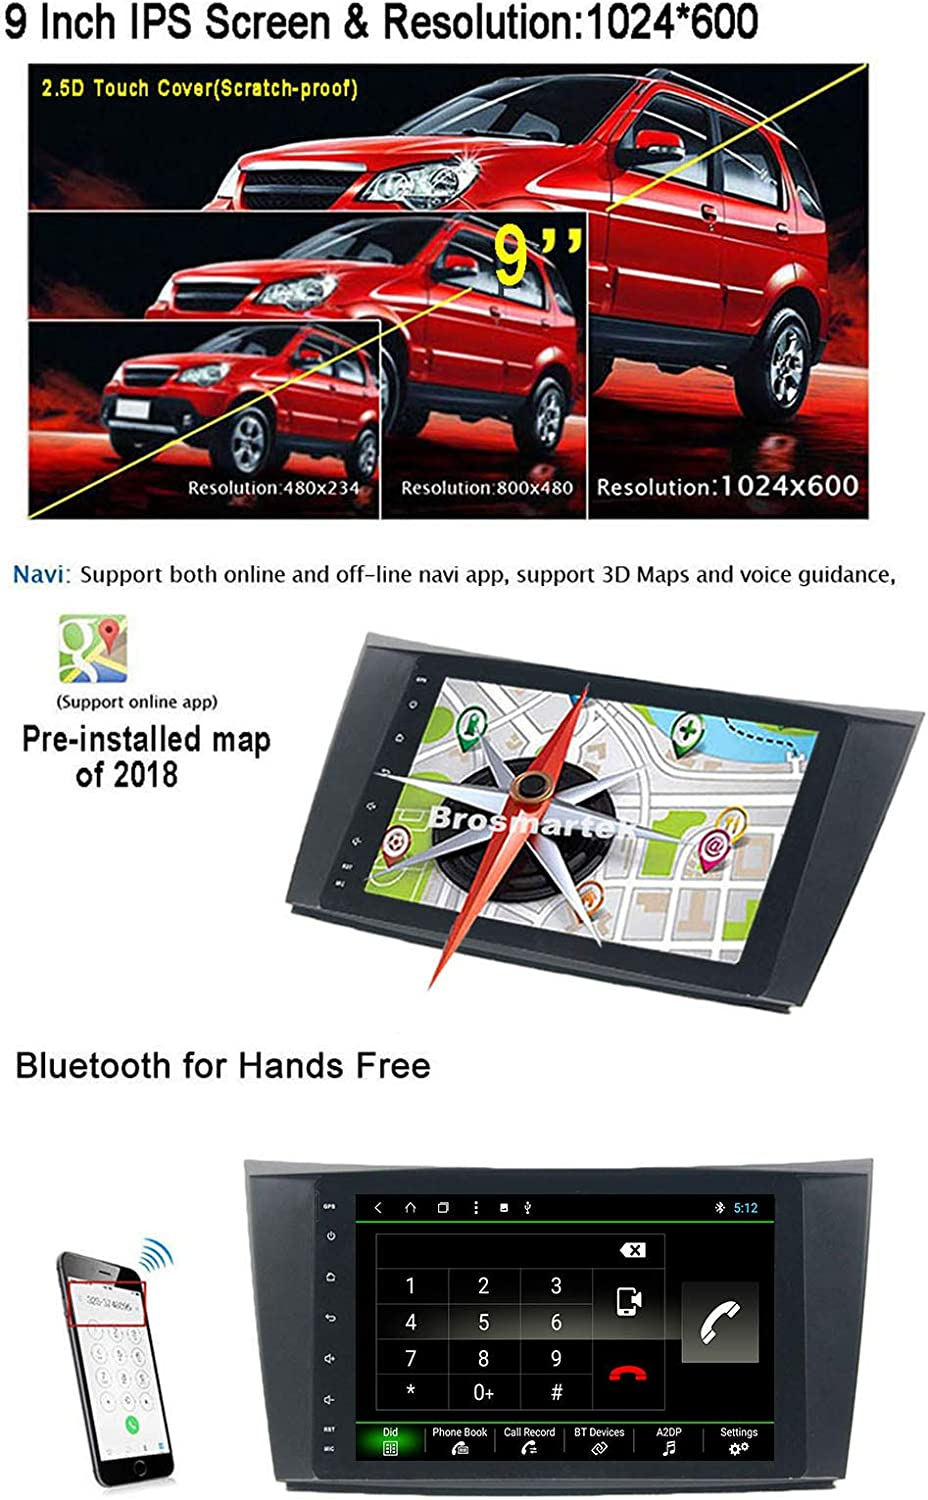 Brosmartek Android 8.1 Stereo 2G RAM Black Car Navigation 1S FastBoot//IPS Screen//Multi Window View